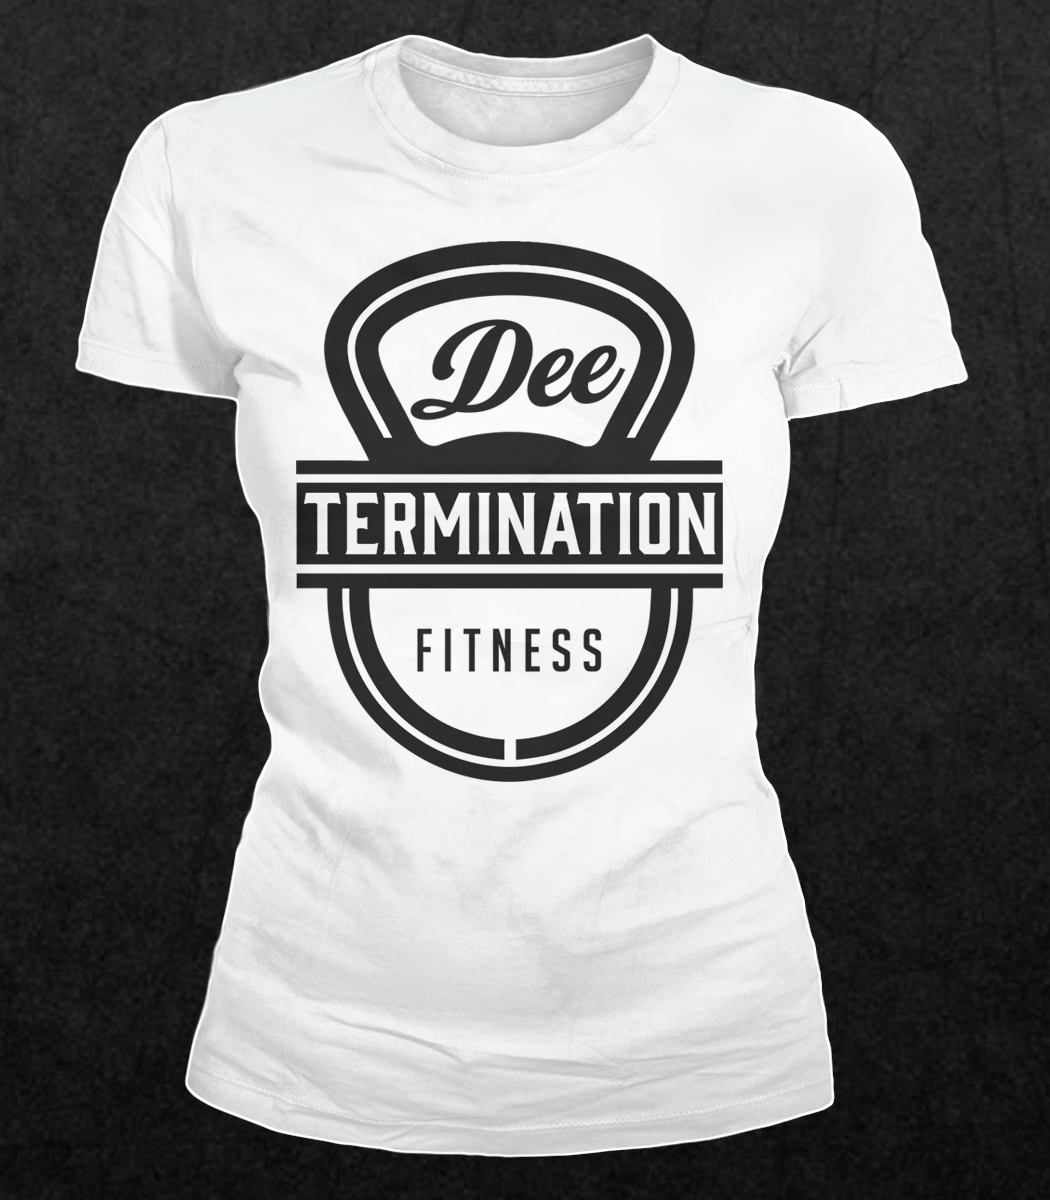 Bold Modern Advertising T Shirt Design For A Company By